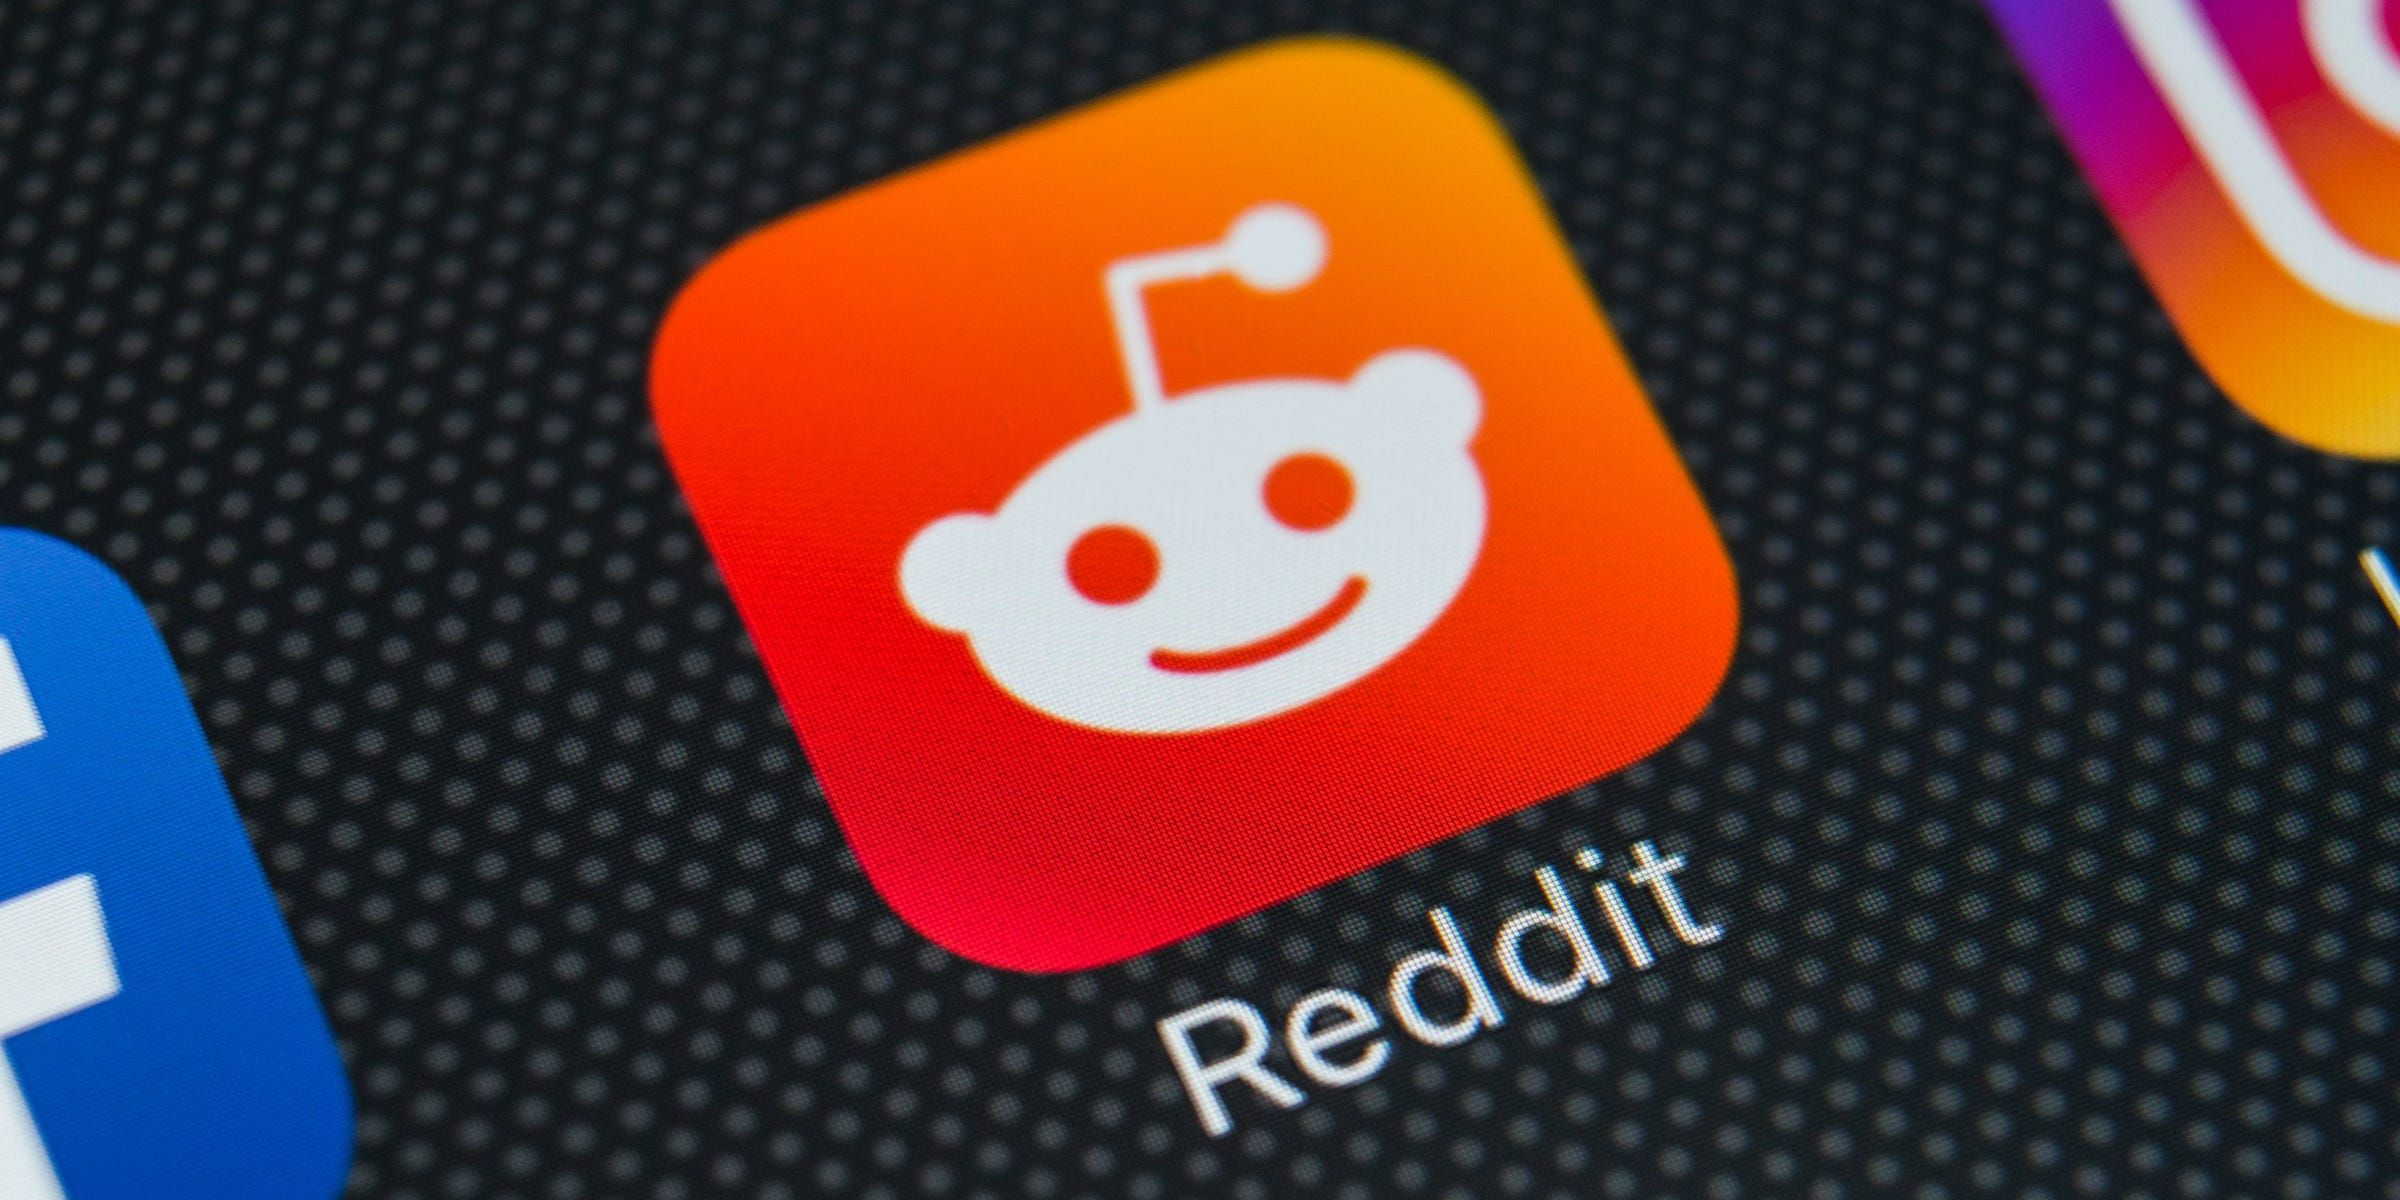 How to comment on Reddit posts or reply to other comments